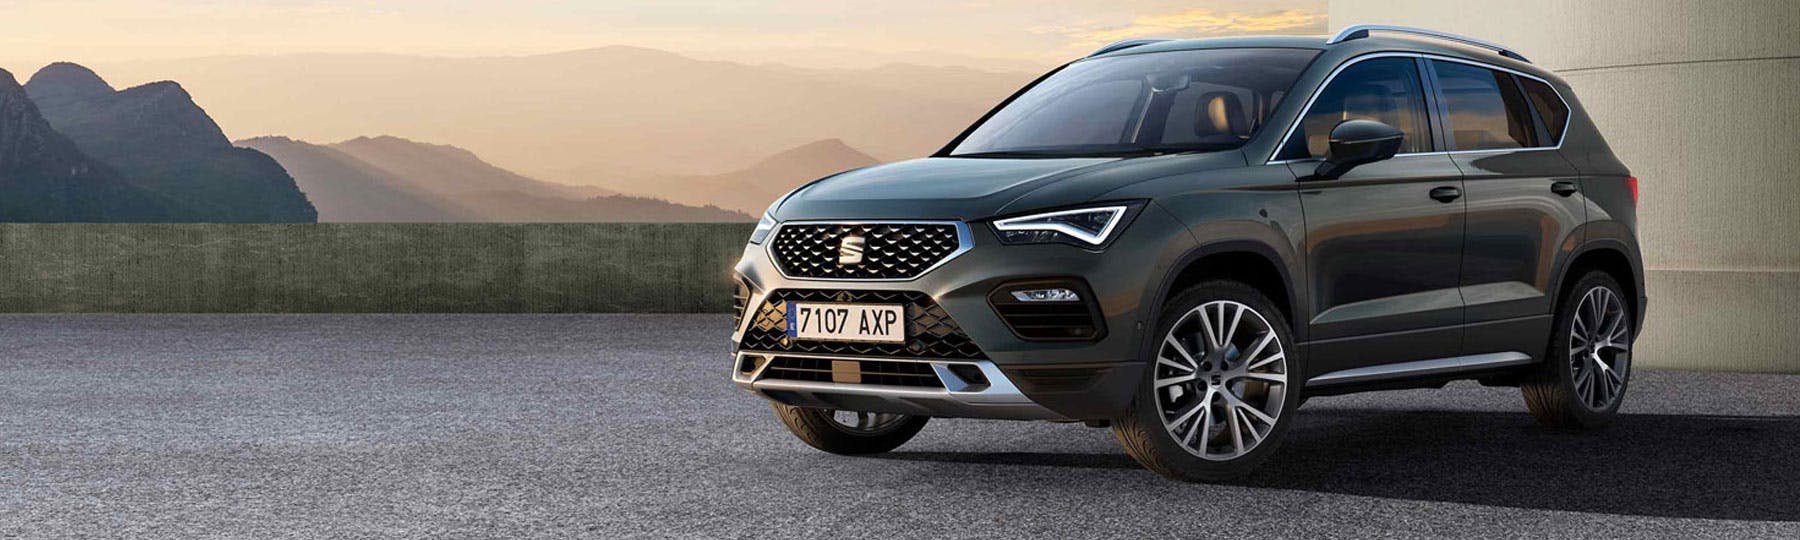 new seat ateca for sale | hatfield seat